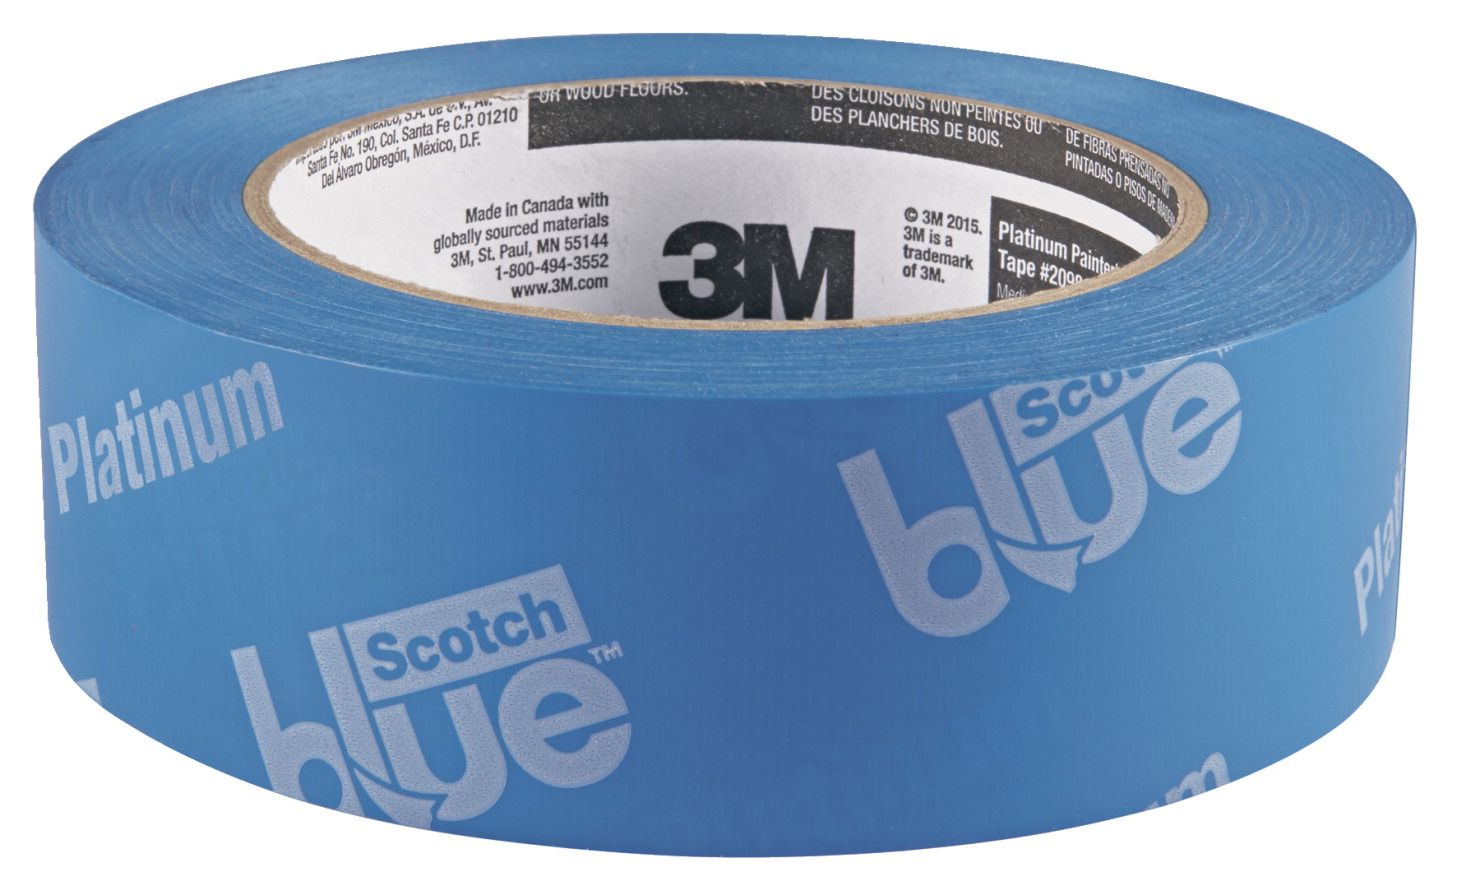 Scotchblue Platinum Painter 39 S Tape Inches X 45 Yards School Specialty Marketplace